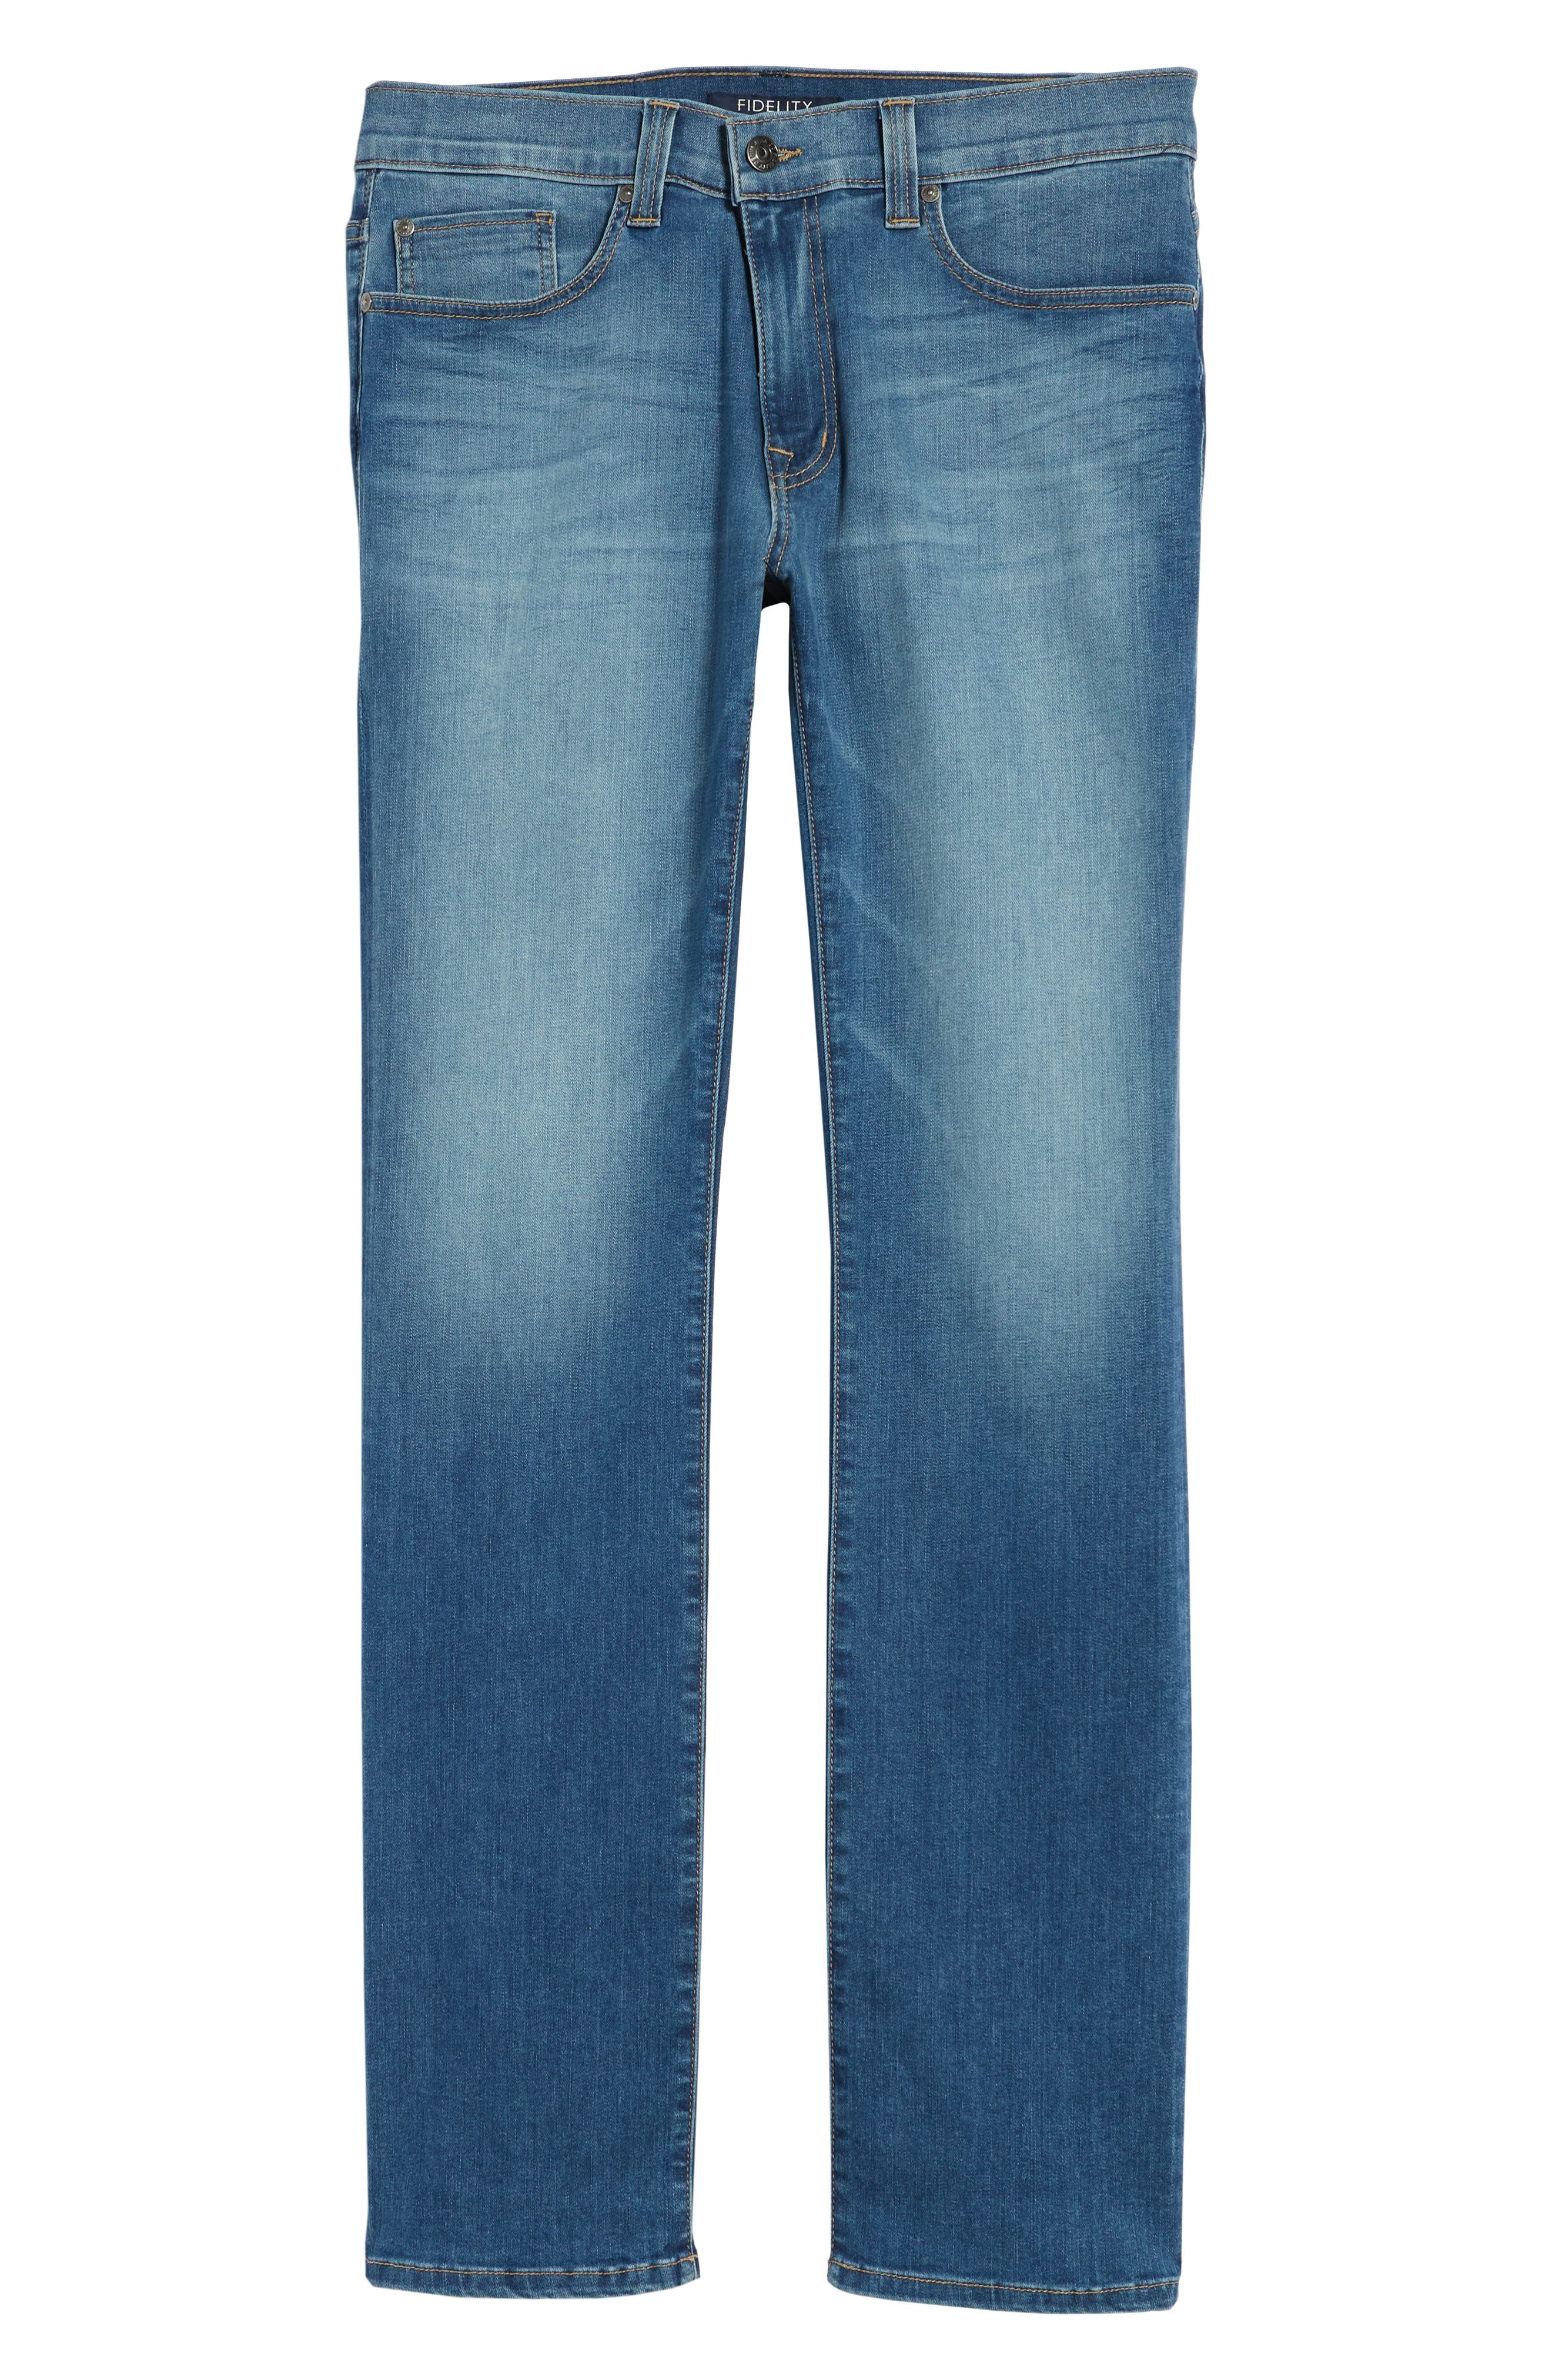 50-11 Relaxed Fit Jeans,                             Alternate thumbnail 6, color,                             Elysium